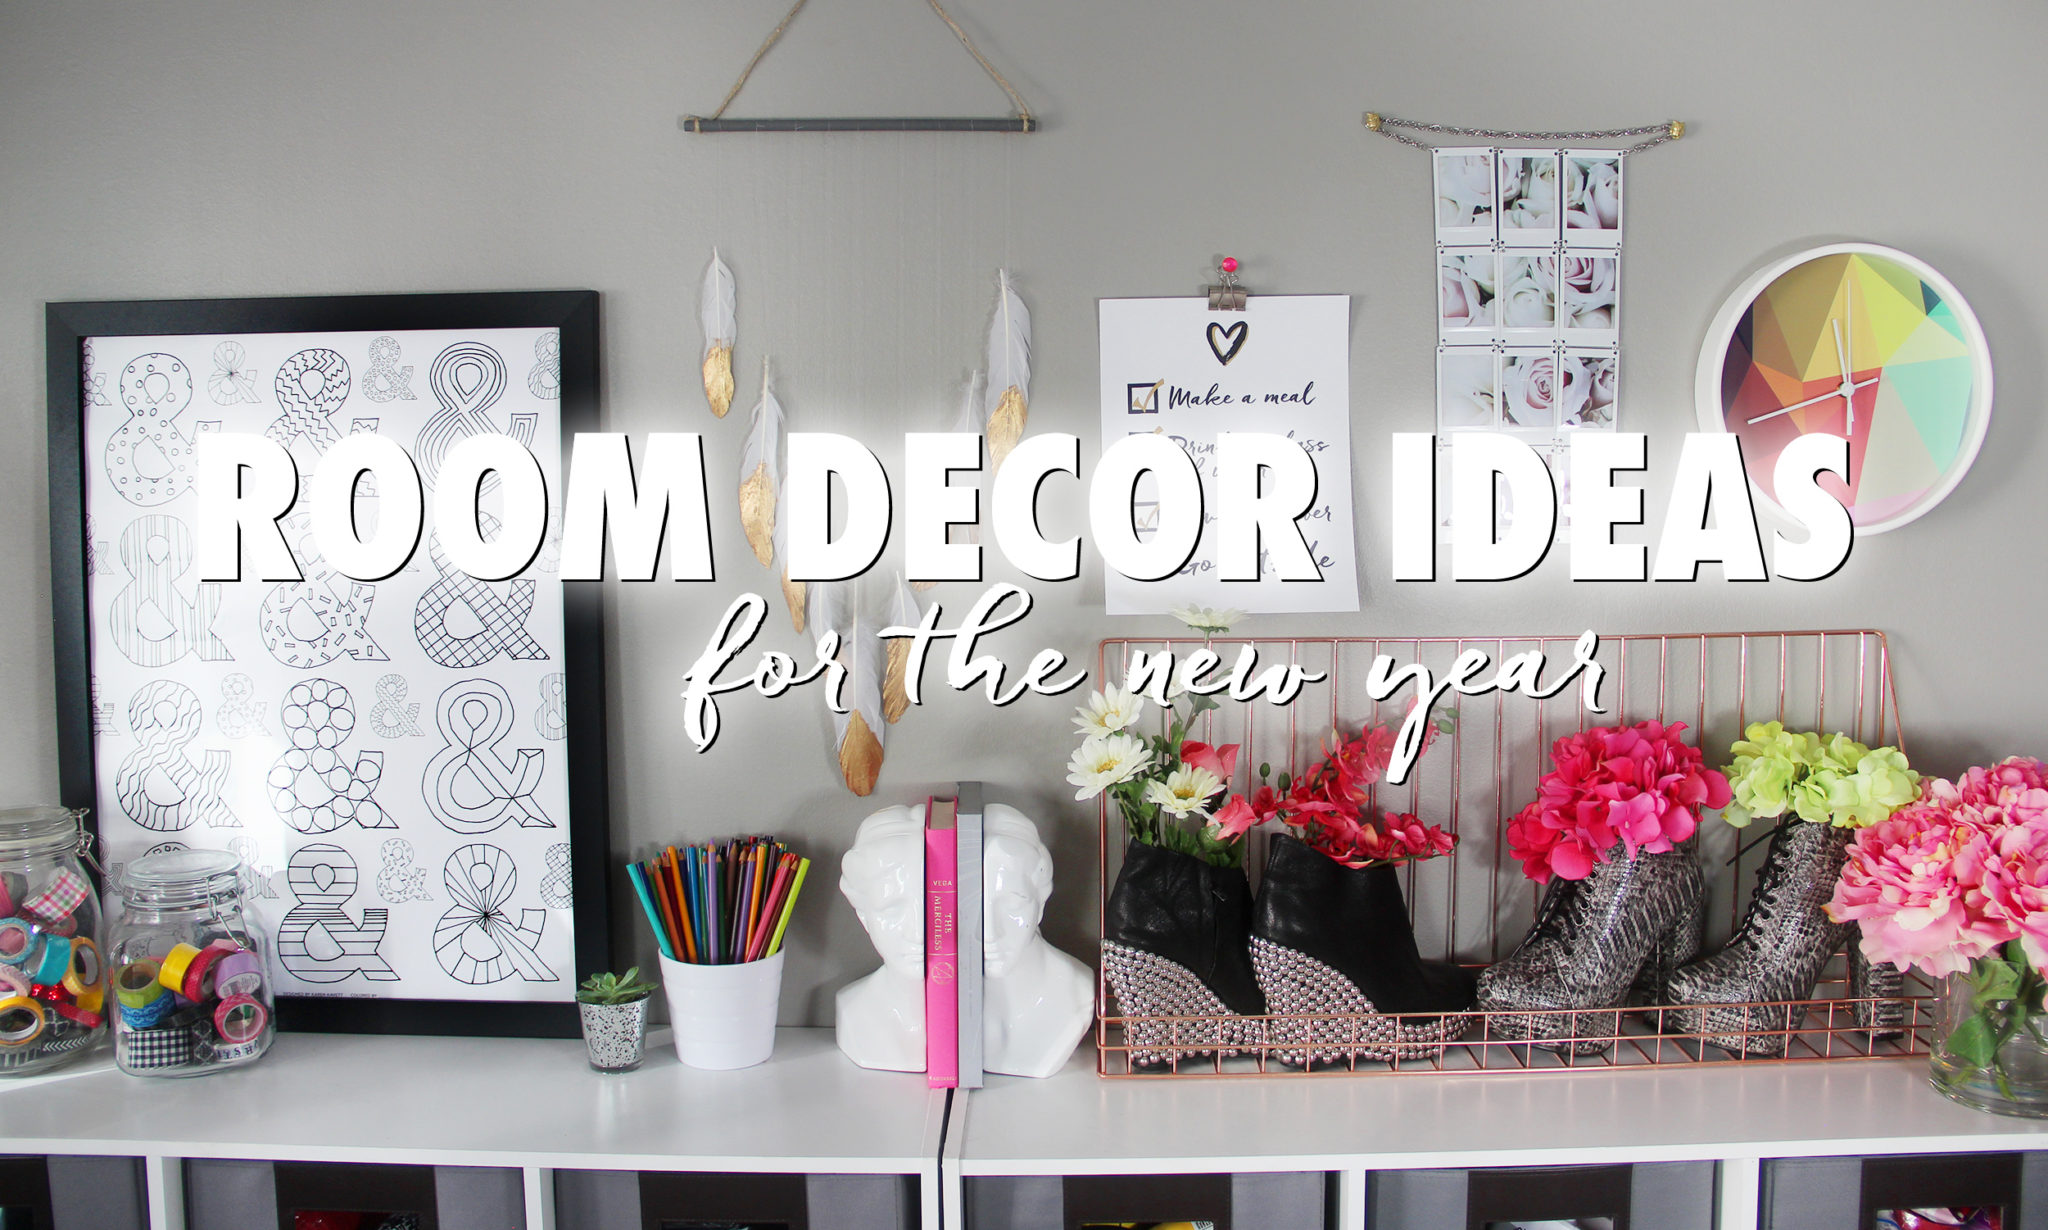 3 room decor ideas for 2016 free printable motivational poster karen kavett - Decorate a house online ...